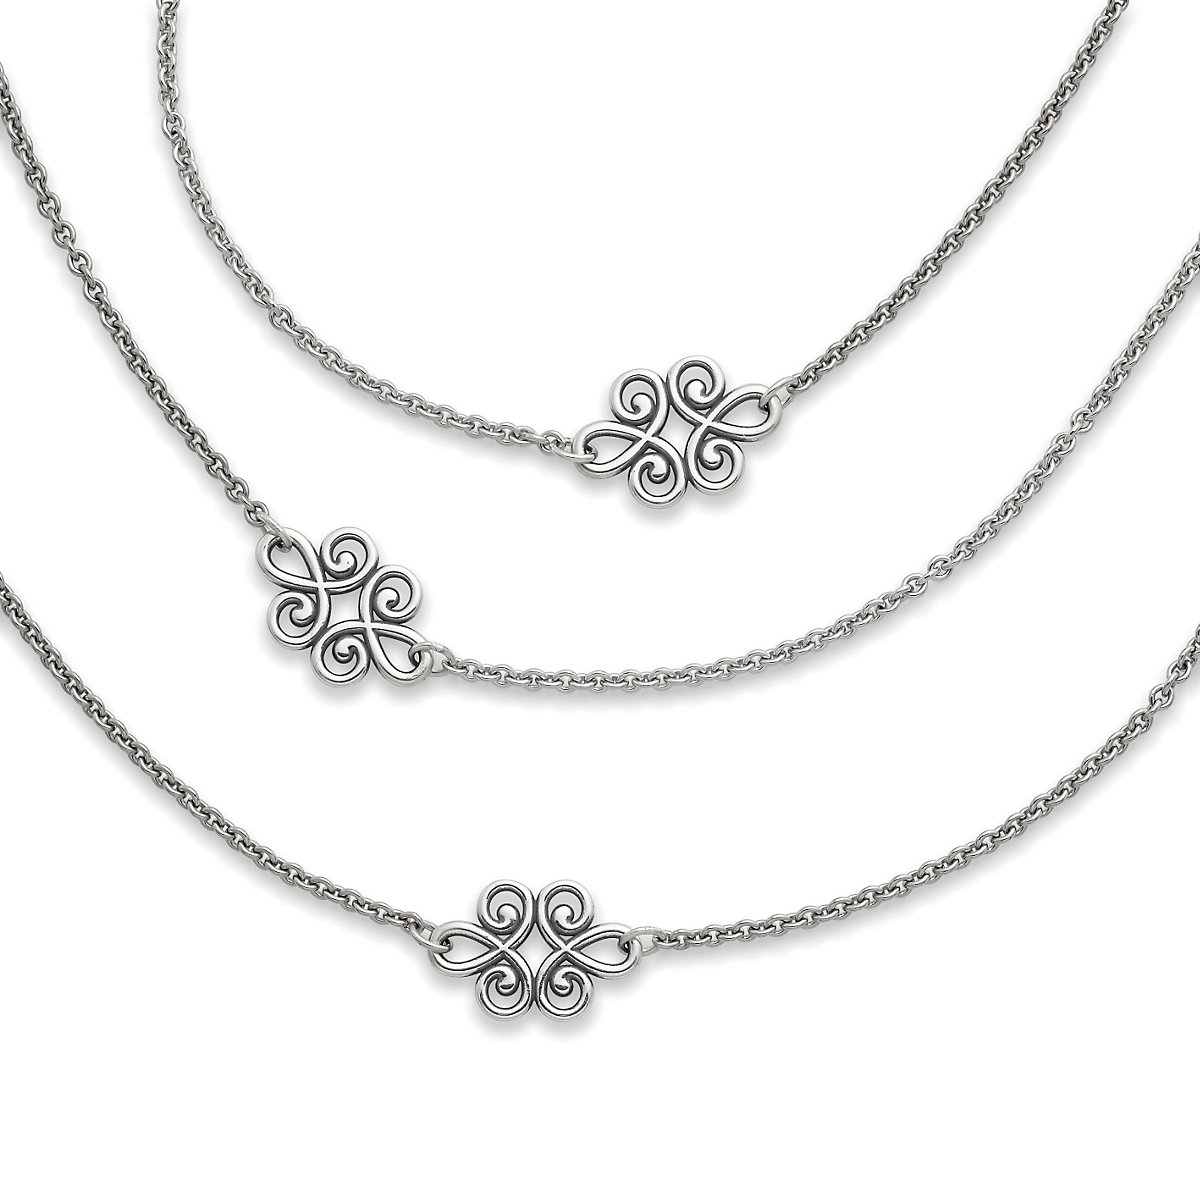 Silver necklaces pendant necklaces james avery linked swirls necklace aloadofball Image collections